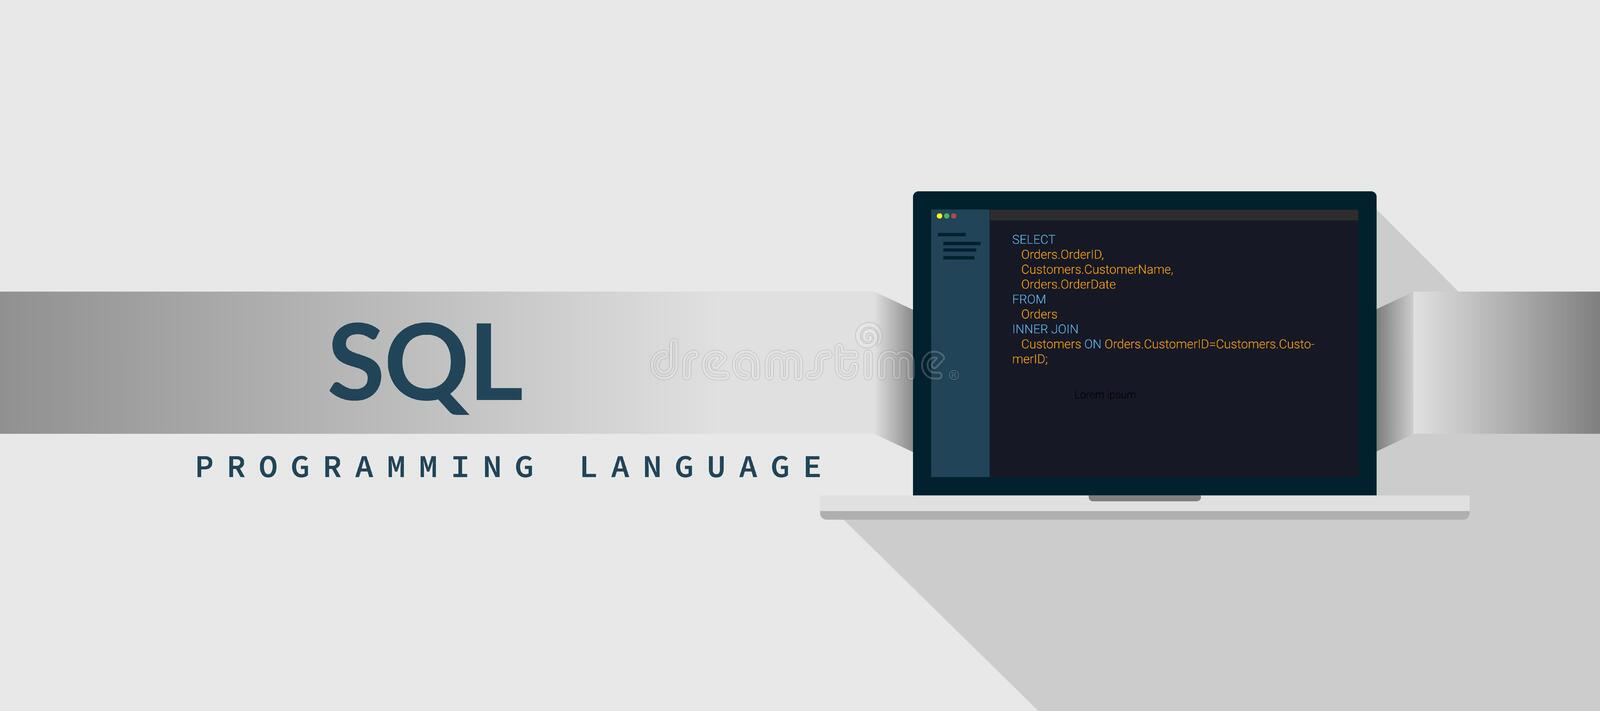 SQL programming language with script code on laptop screen, programming language code illustration stock illustration